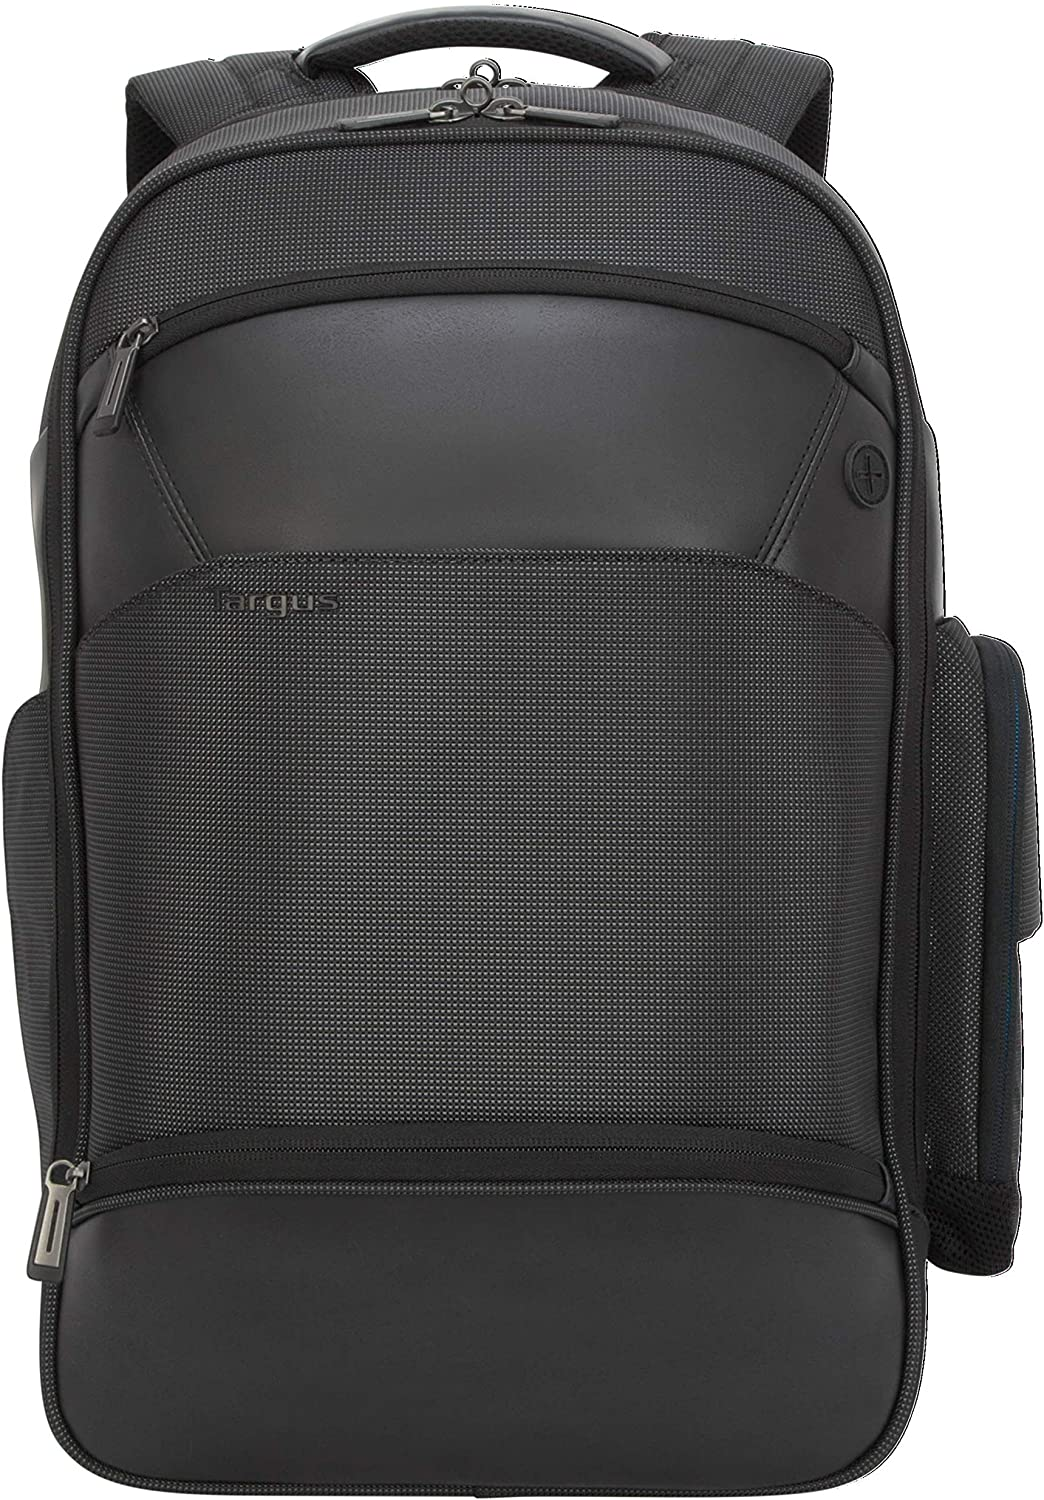 Targus Mobile-VIP Travel and Commuter Backpack with Protective Sleeve for 15.6-Inch Laptop and Wireless Phone Charger, Black (TSB970GL)